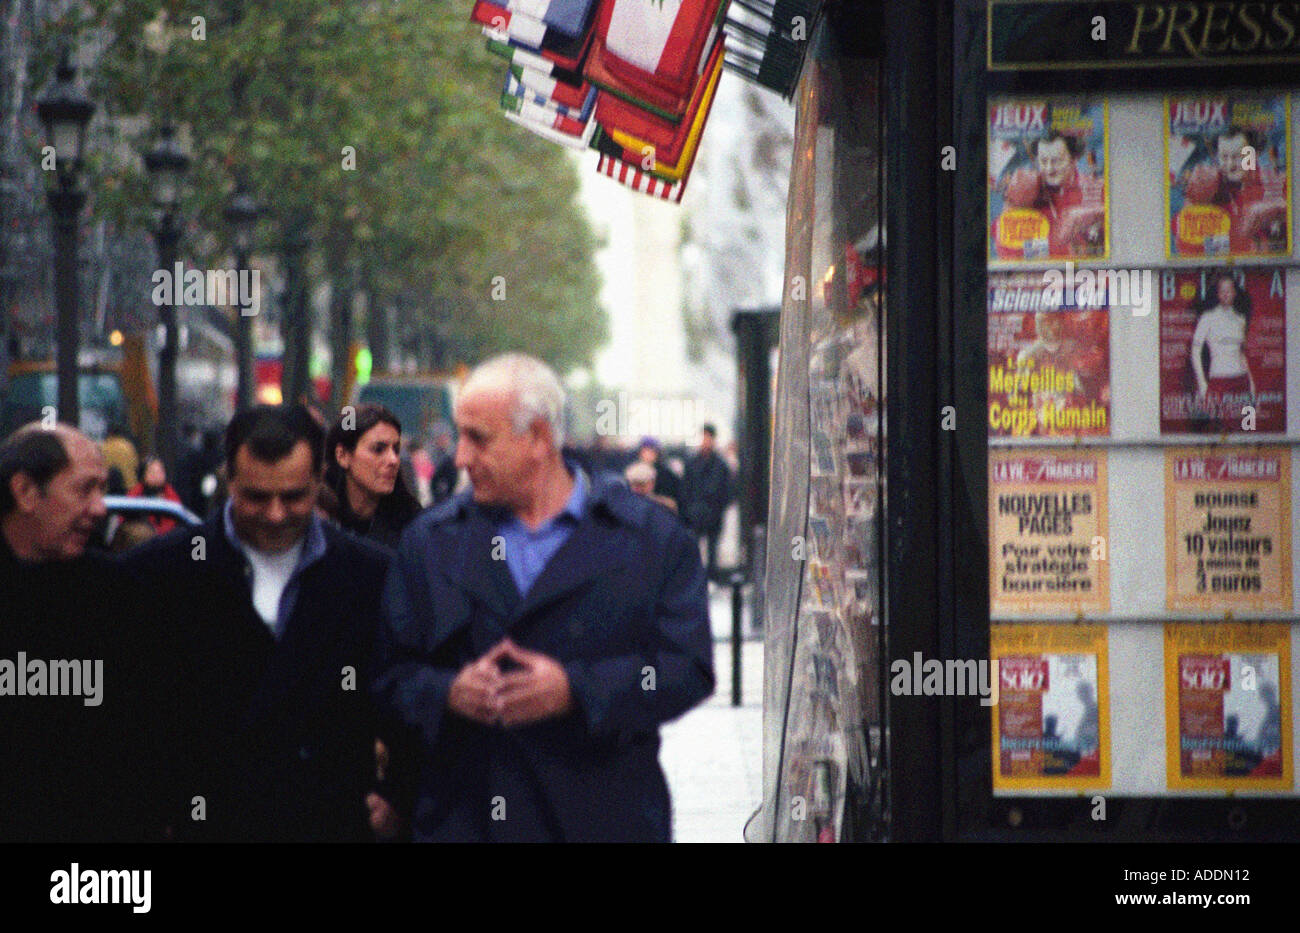 A hazy shot of pedestrians walking along the Champs Elysées in Paris France - Stock Image